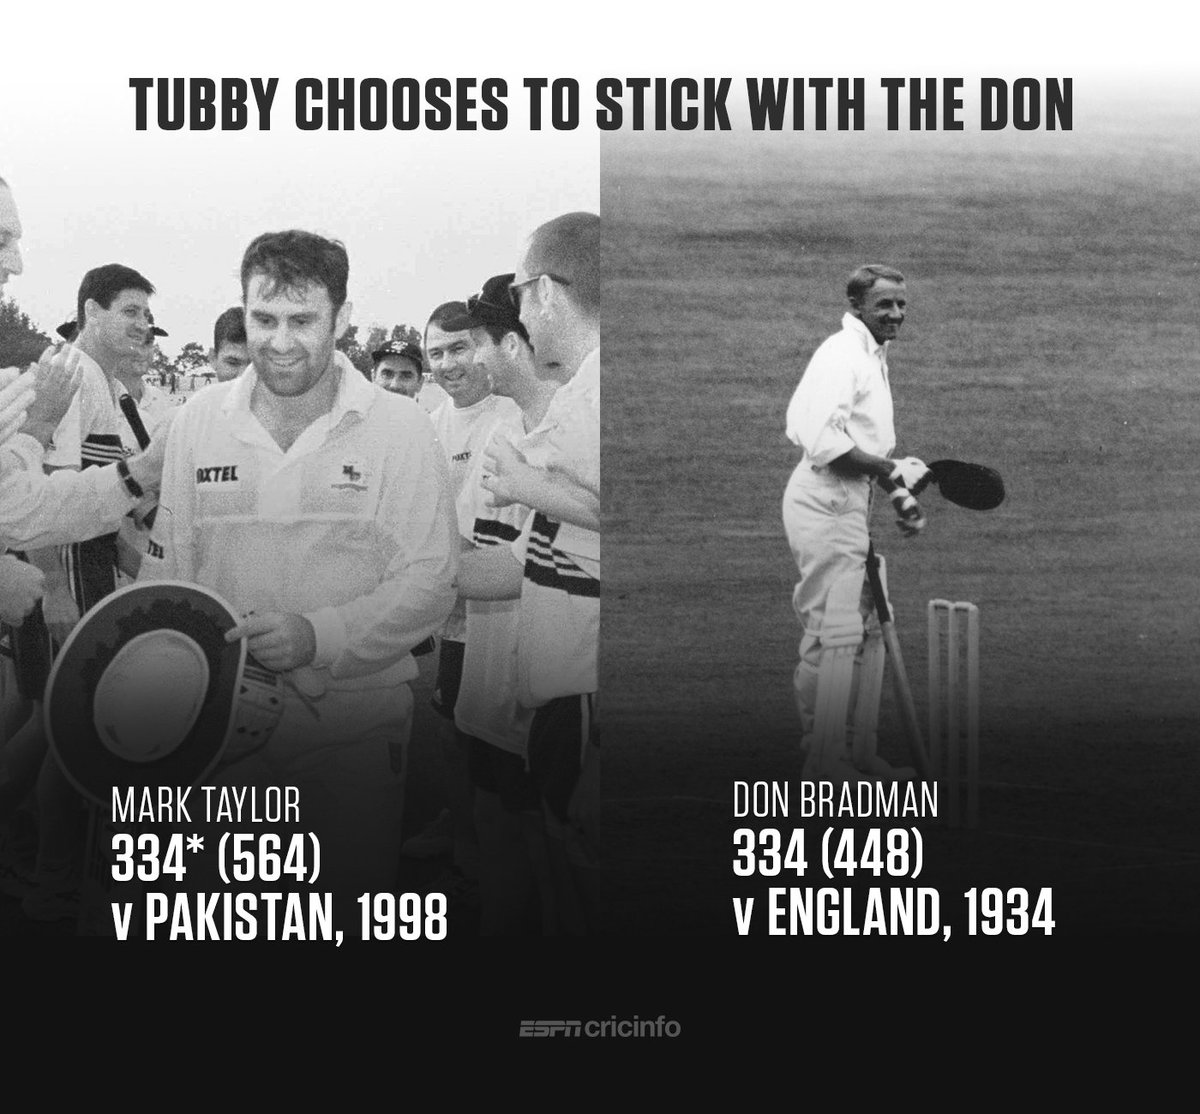 #OnThisDay 20 years ago, Mark Taylor decided to stay level with Don Bradman   More here: https://t.co/mIInoxDOUq